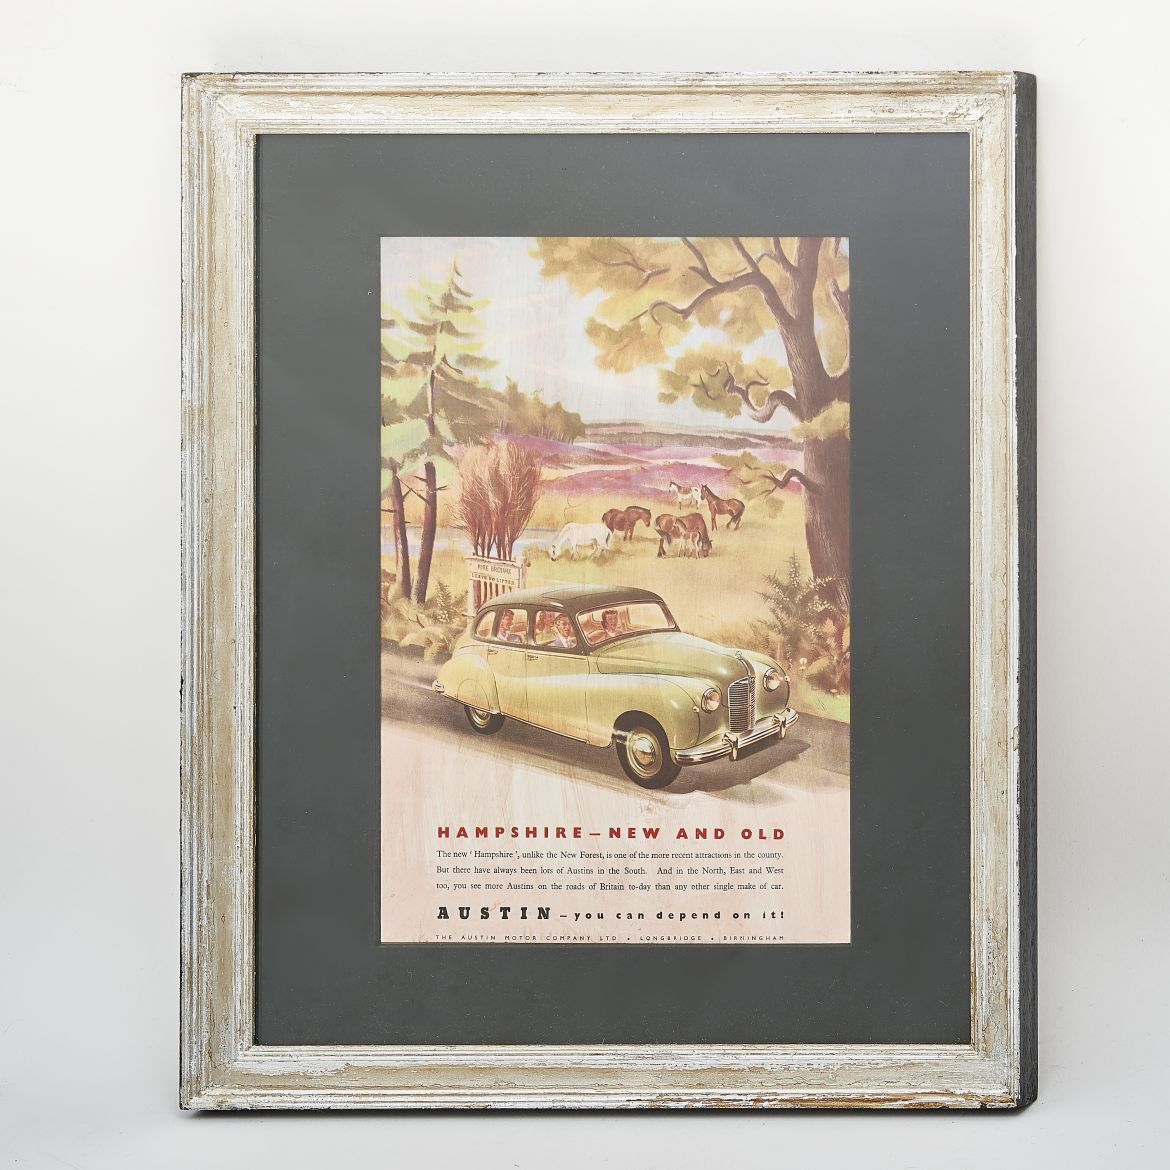 1940s Hampshire by Austin advert